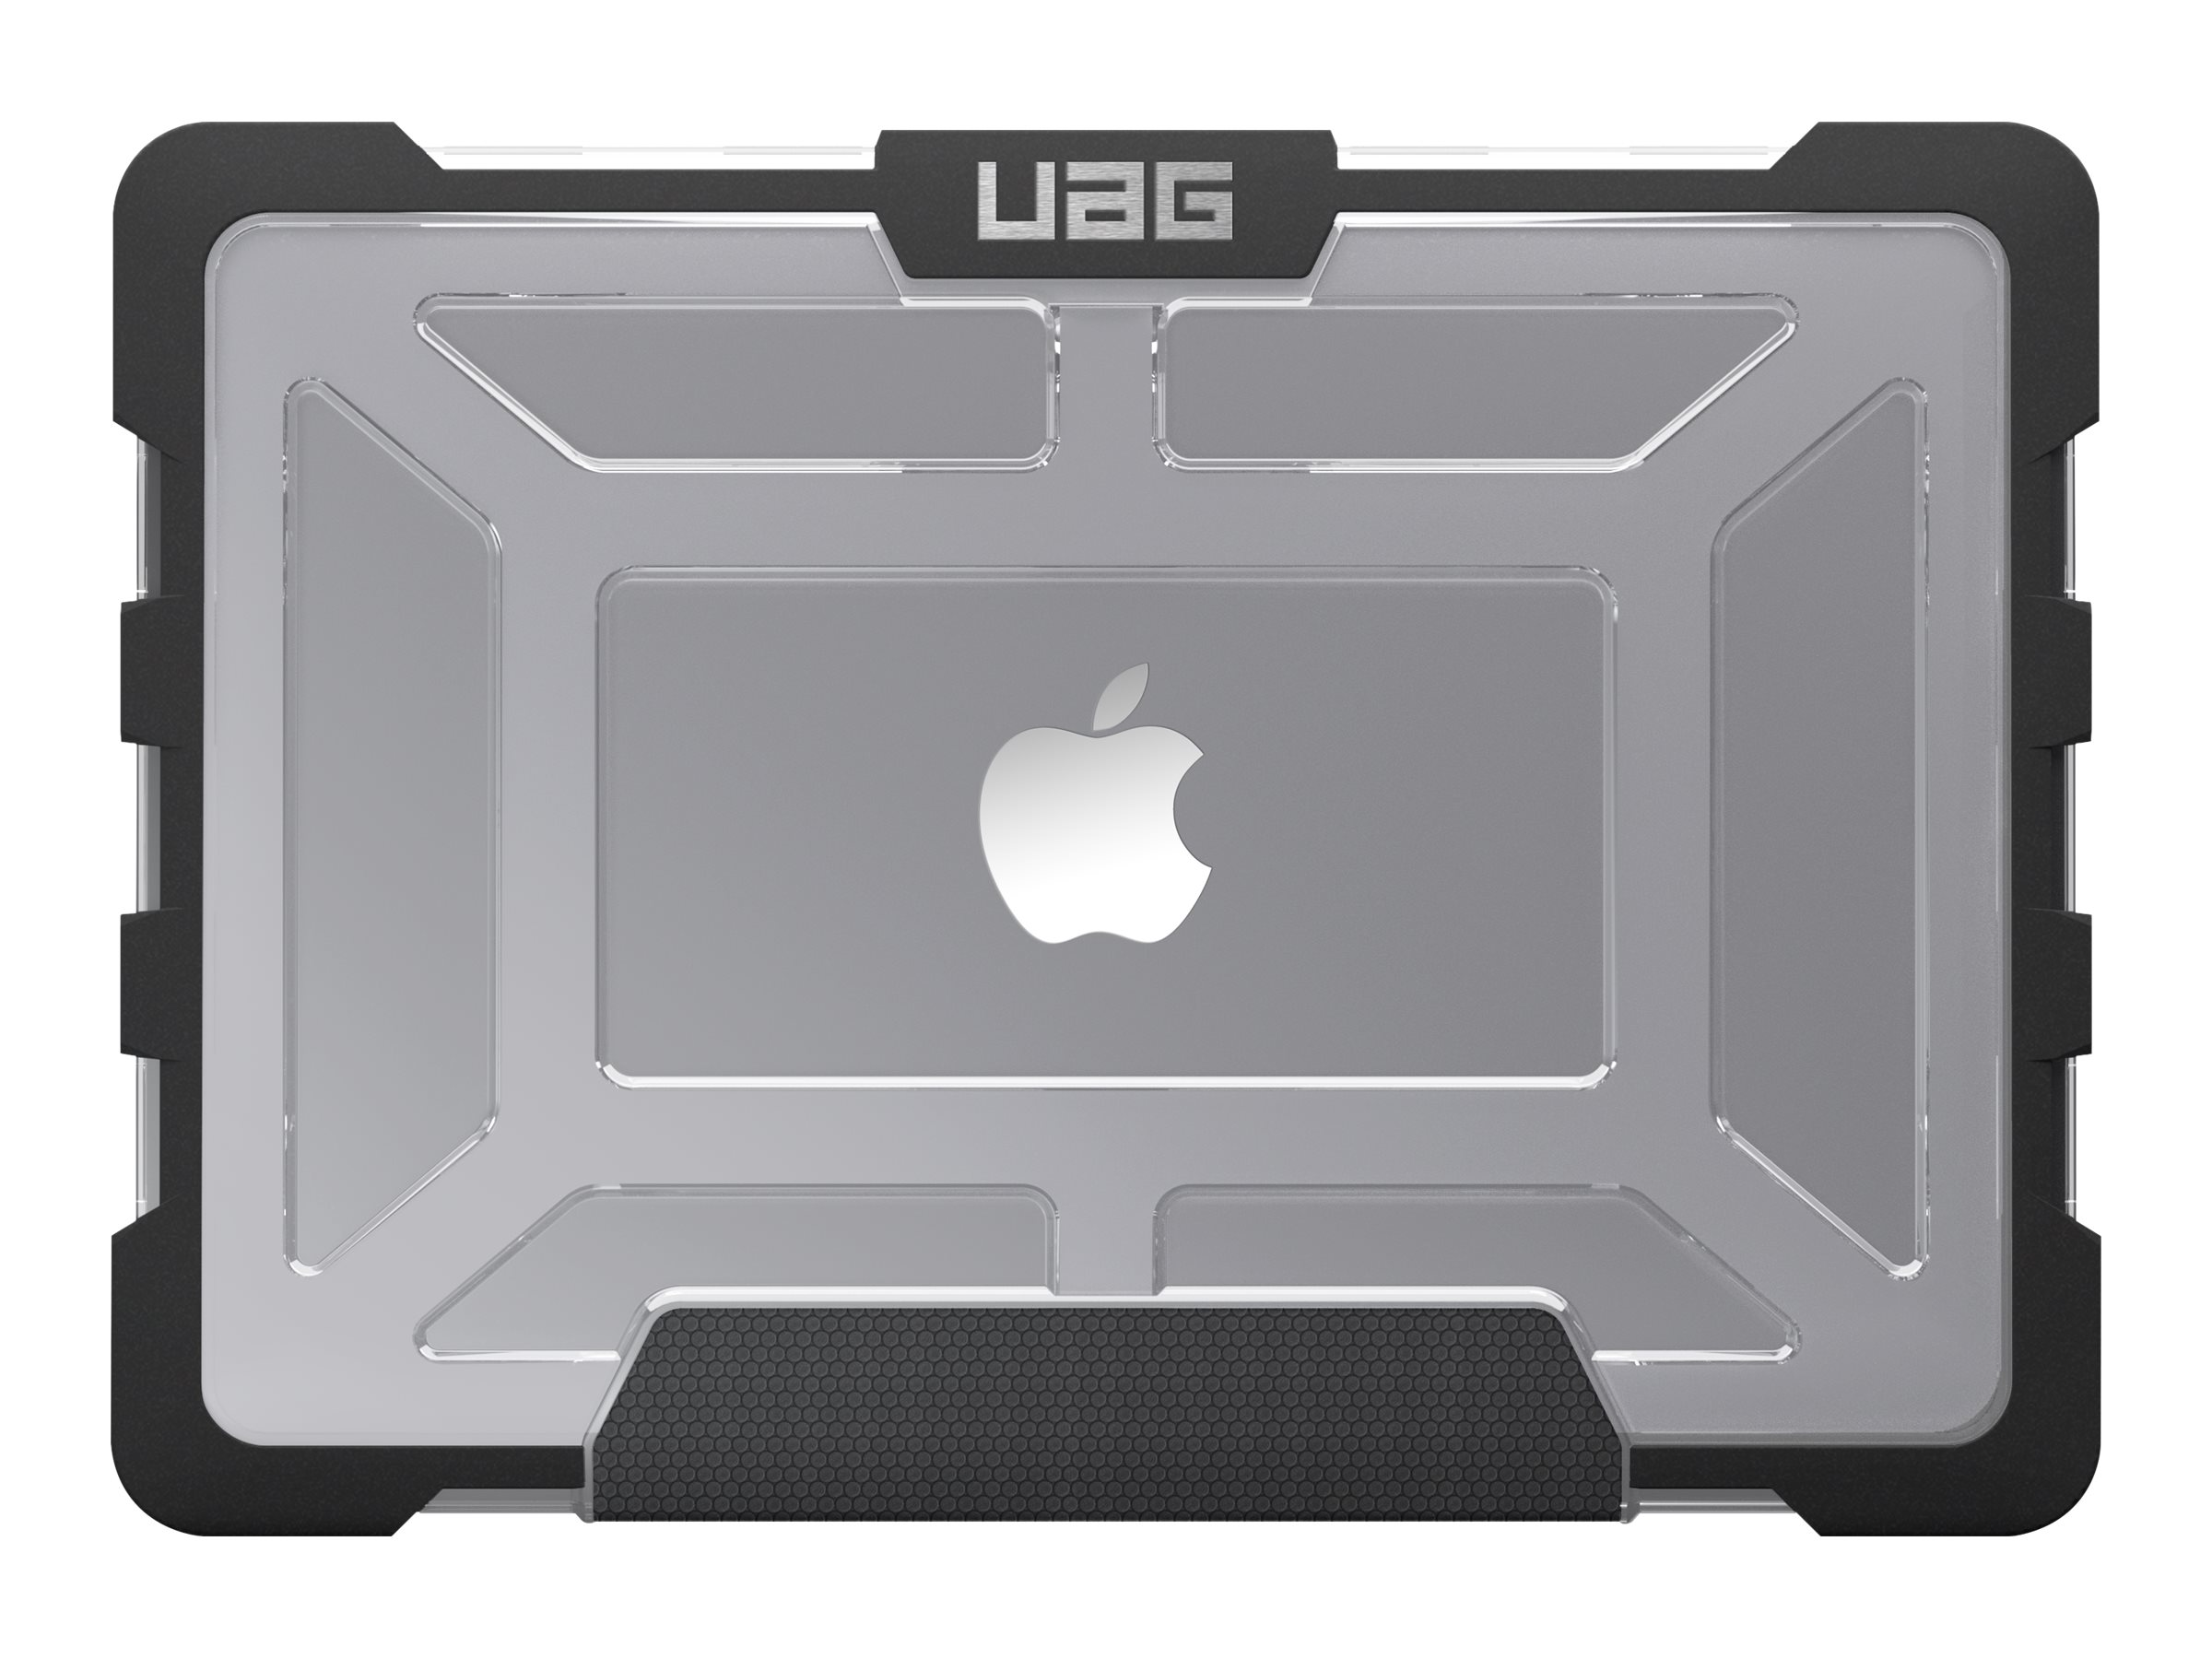 Urban Armor Case, Visual Packaging for Macbook Pro 15 Retina Display, Ice Black, MBP15-A1398-ICE